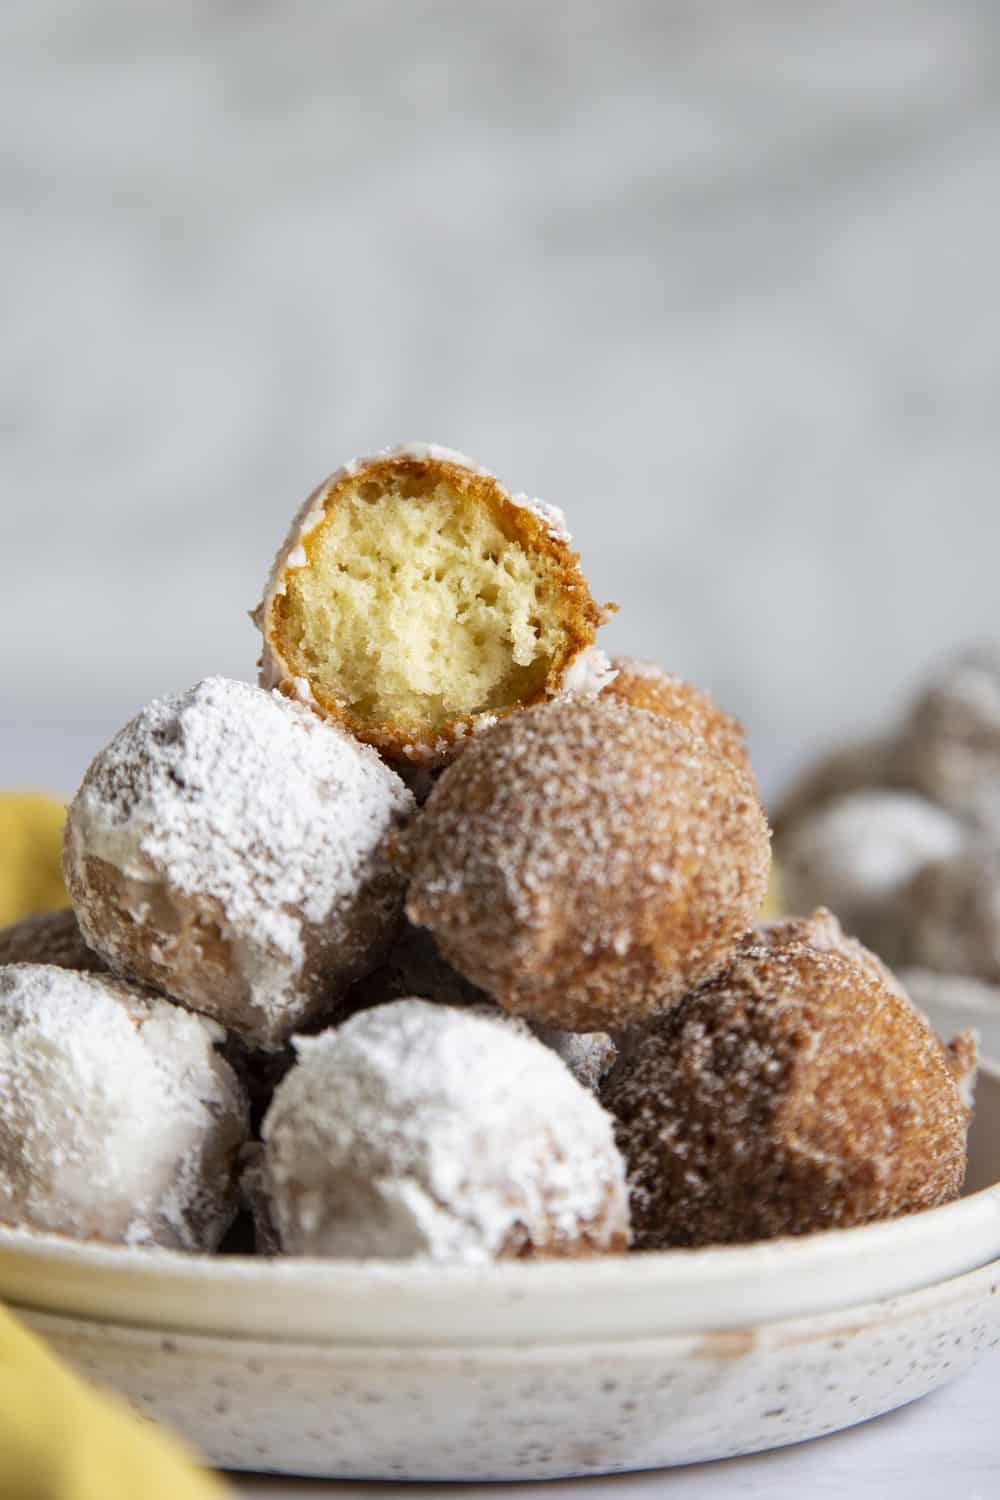 A tower of donut holes with one half eaten on top.